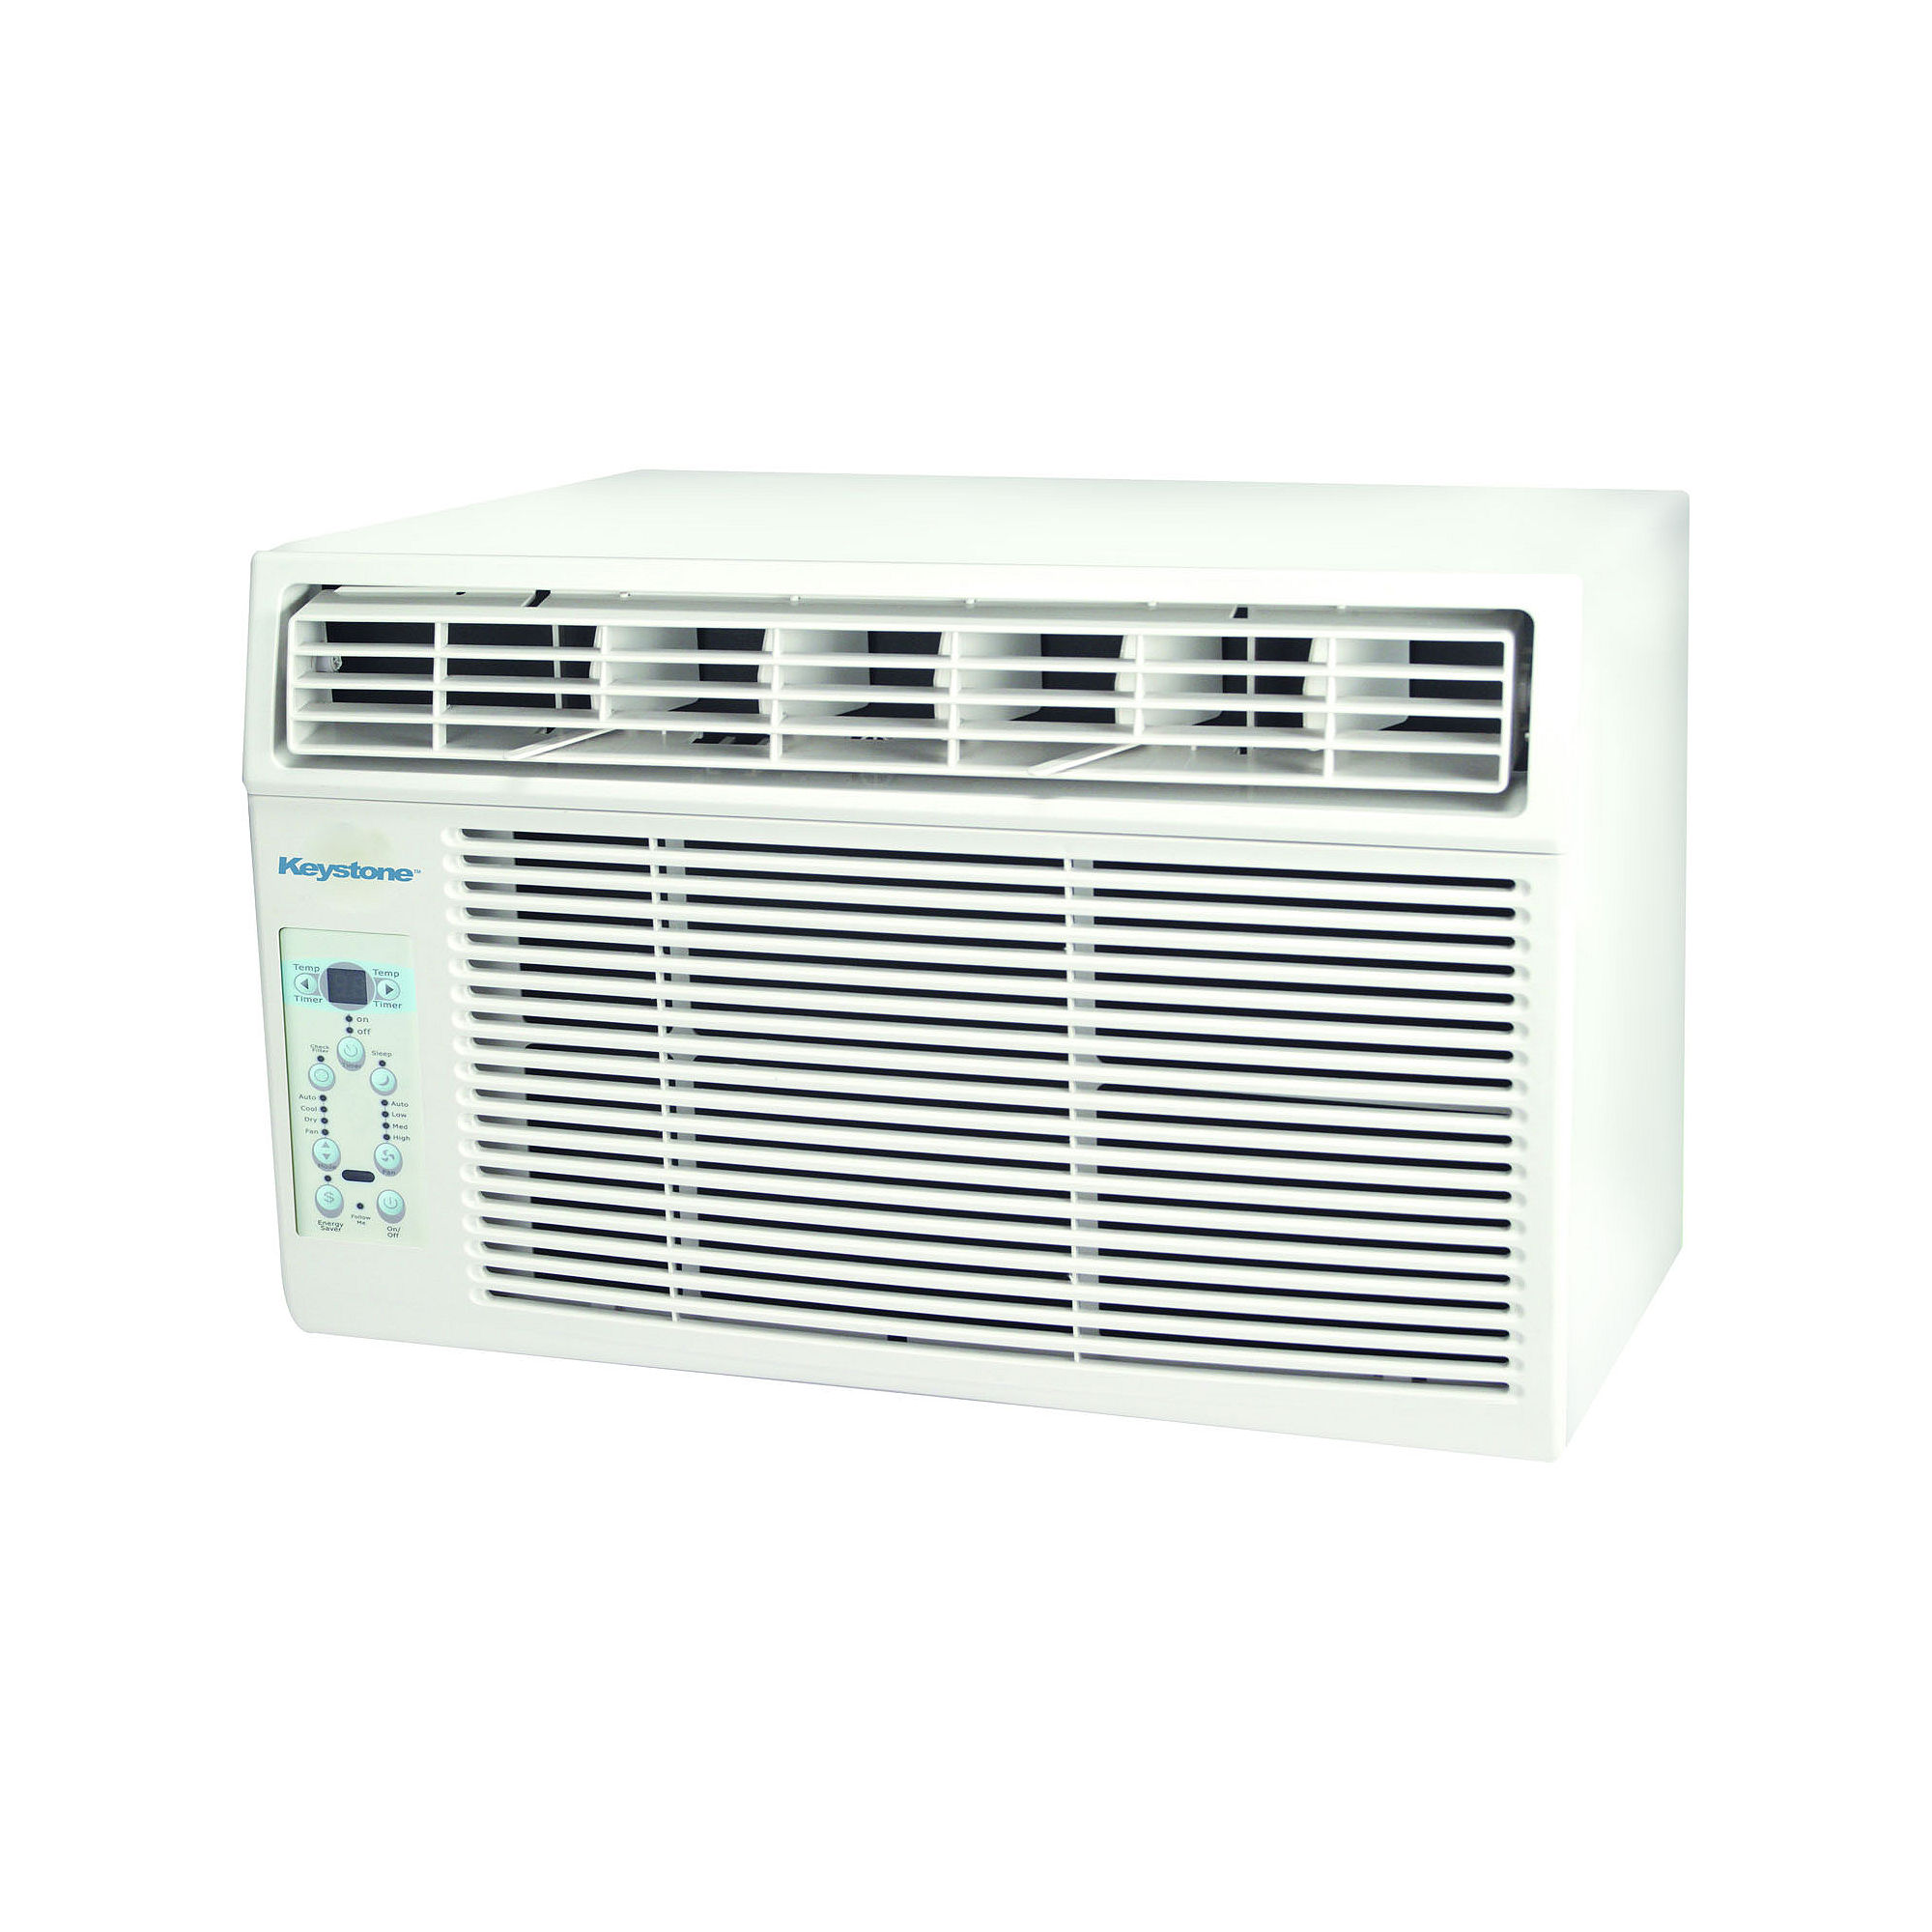 "Keystone 12000 BTU Window-Mounted Air Conditionerwith ""Follow Me"" LCD Remote Control"""